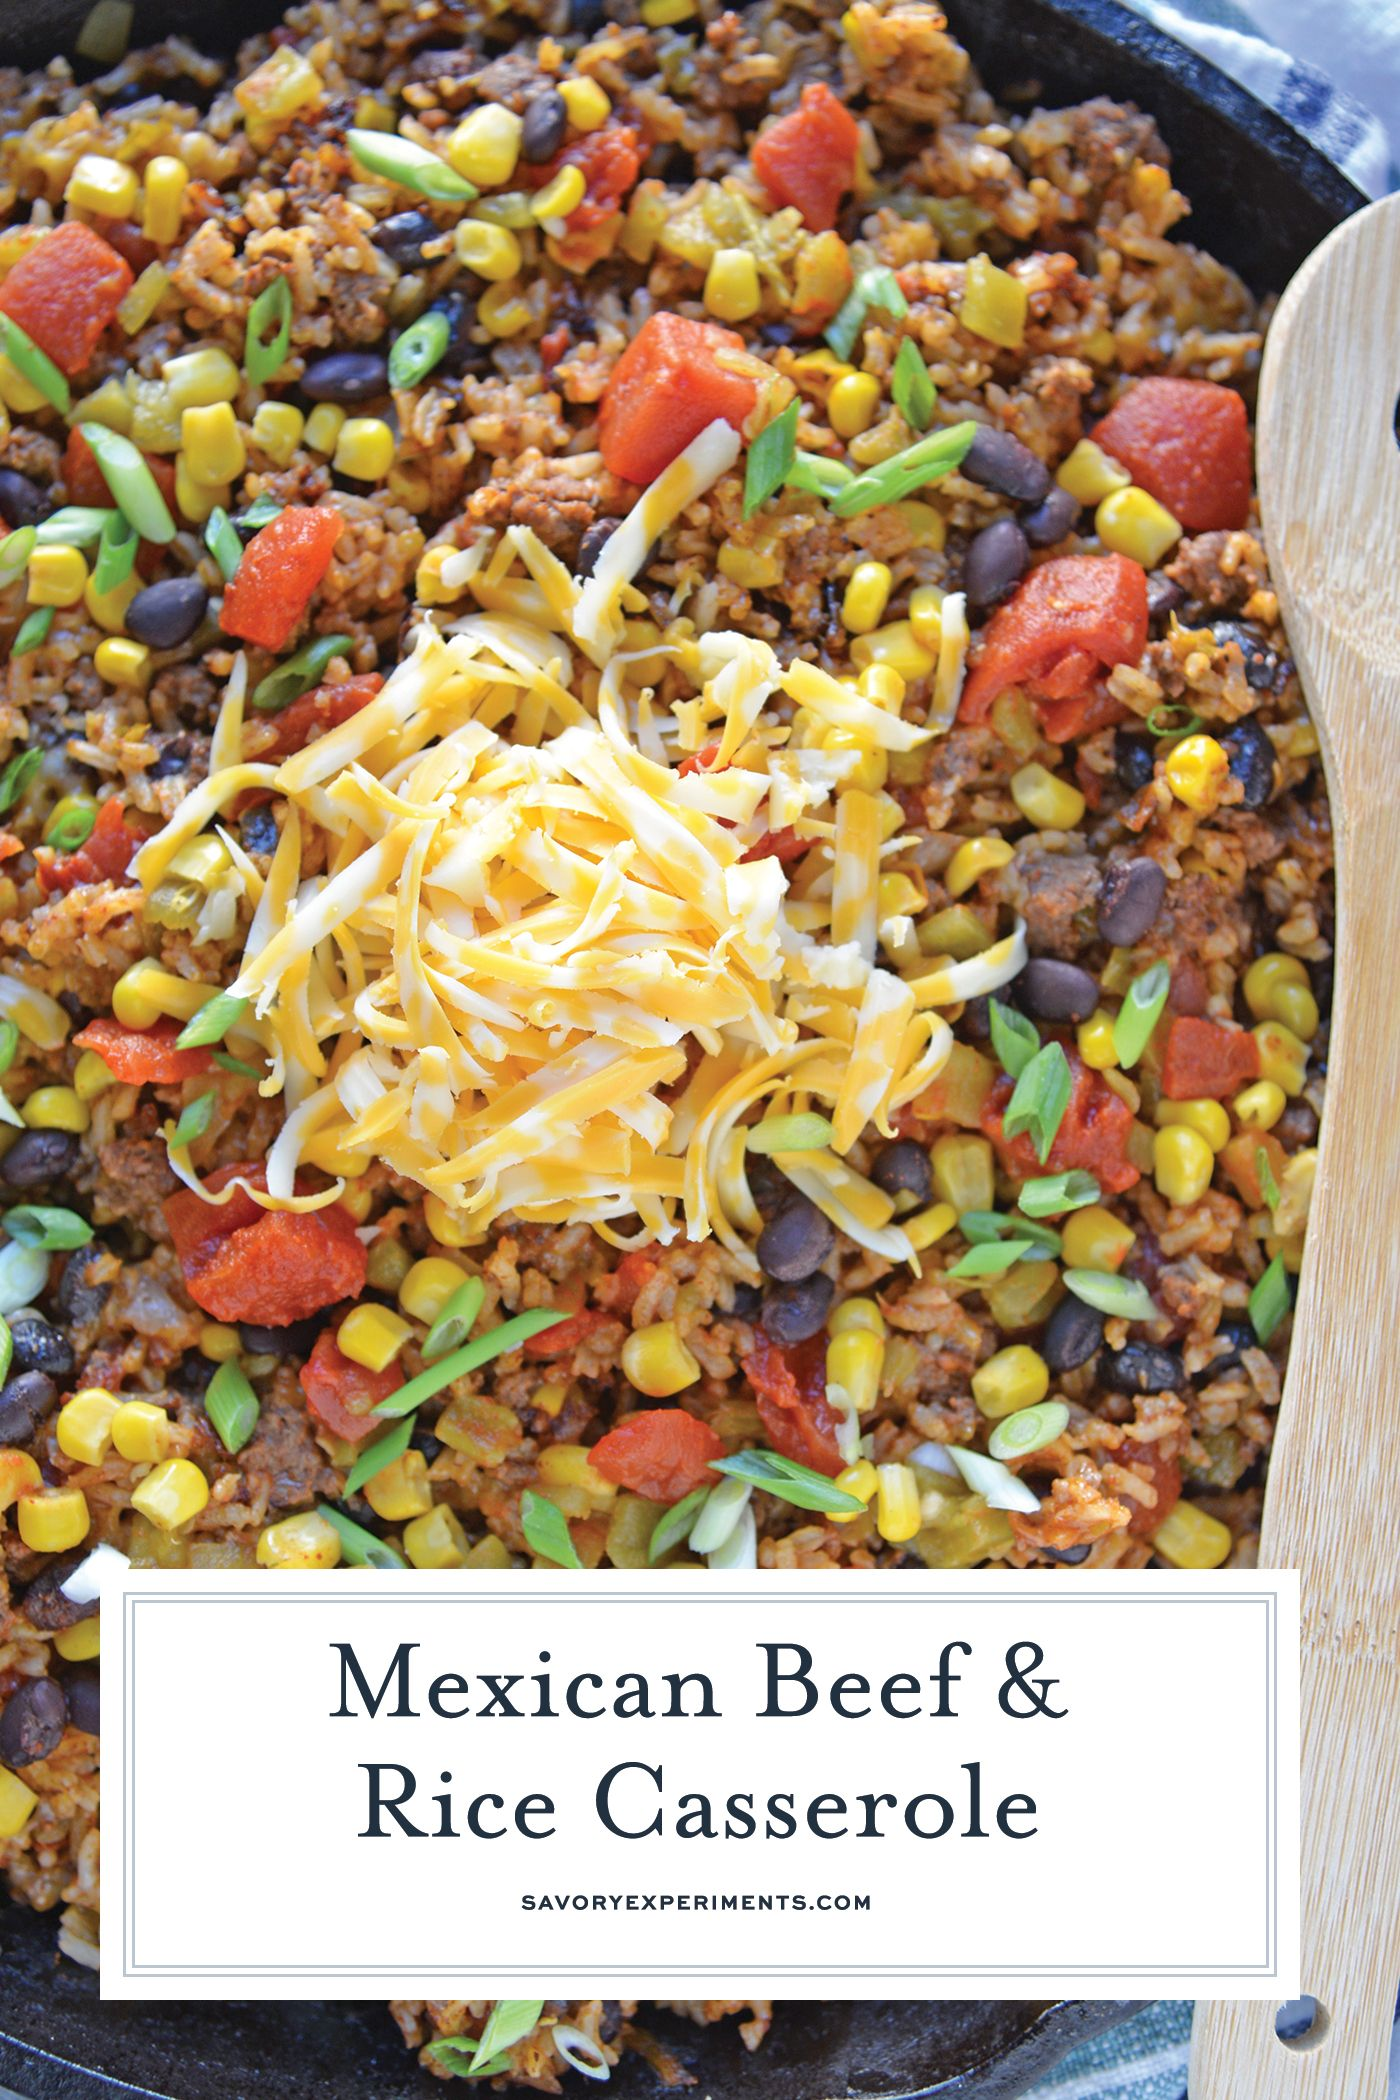 Mexican Beef And Rice Casserole Is An Easy Weeknight Recipe Using Ground Beef Taco Seasonin Recipes Using Ground Beef Ground Beef Recipes Mexican Mexican Beef